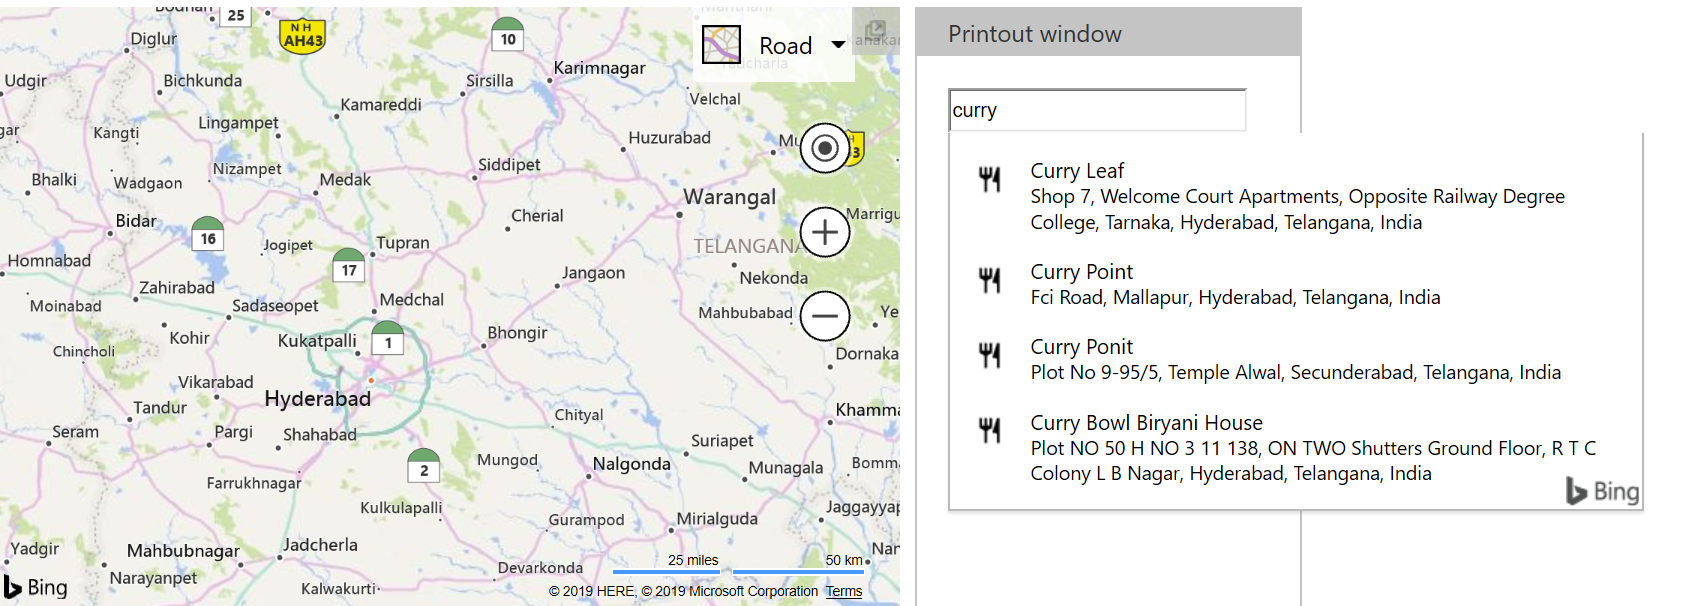 Bing Maps Autosuggest - India